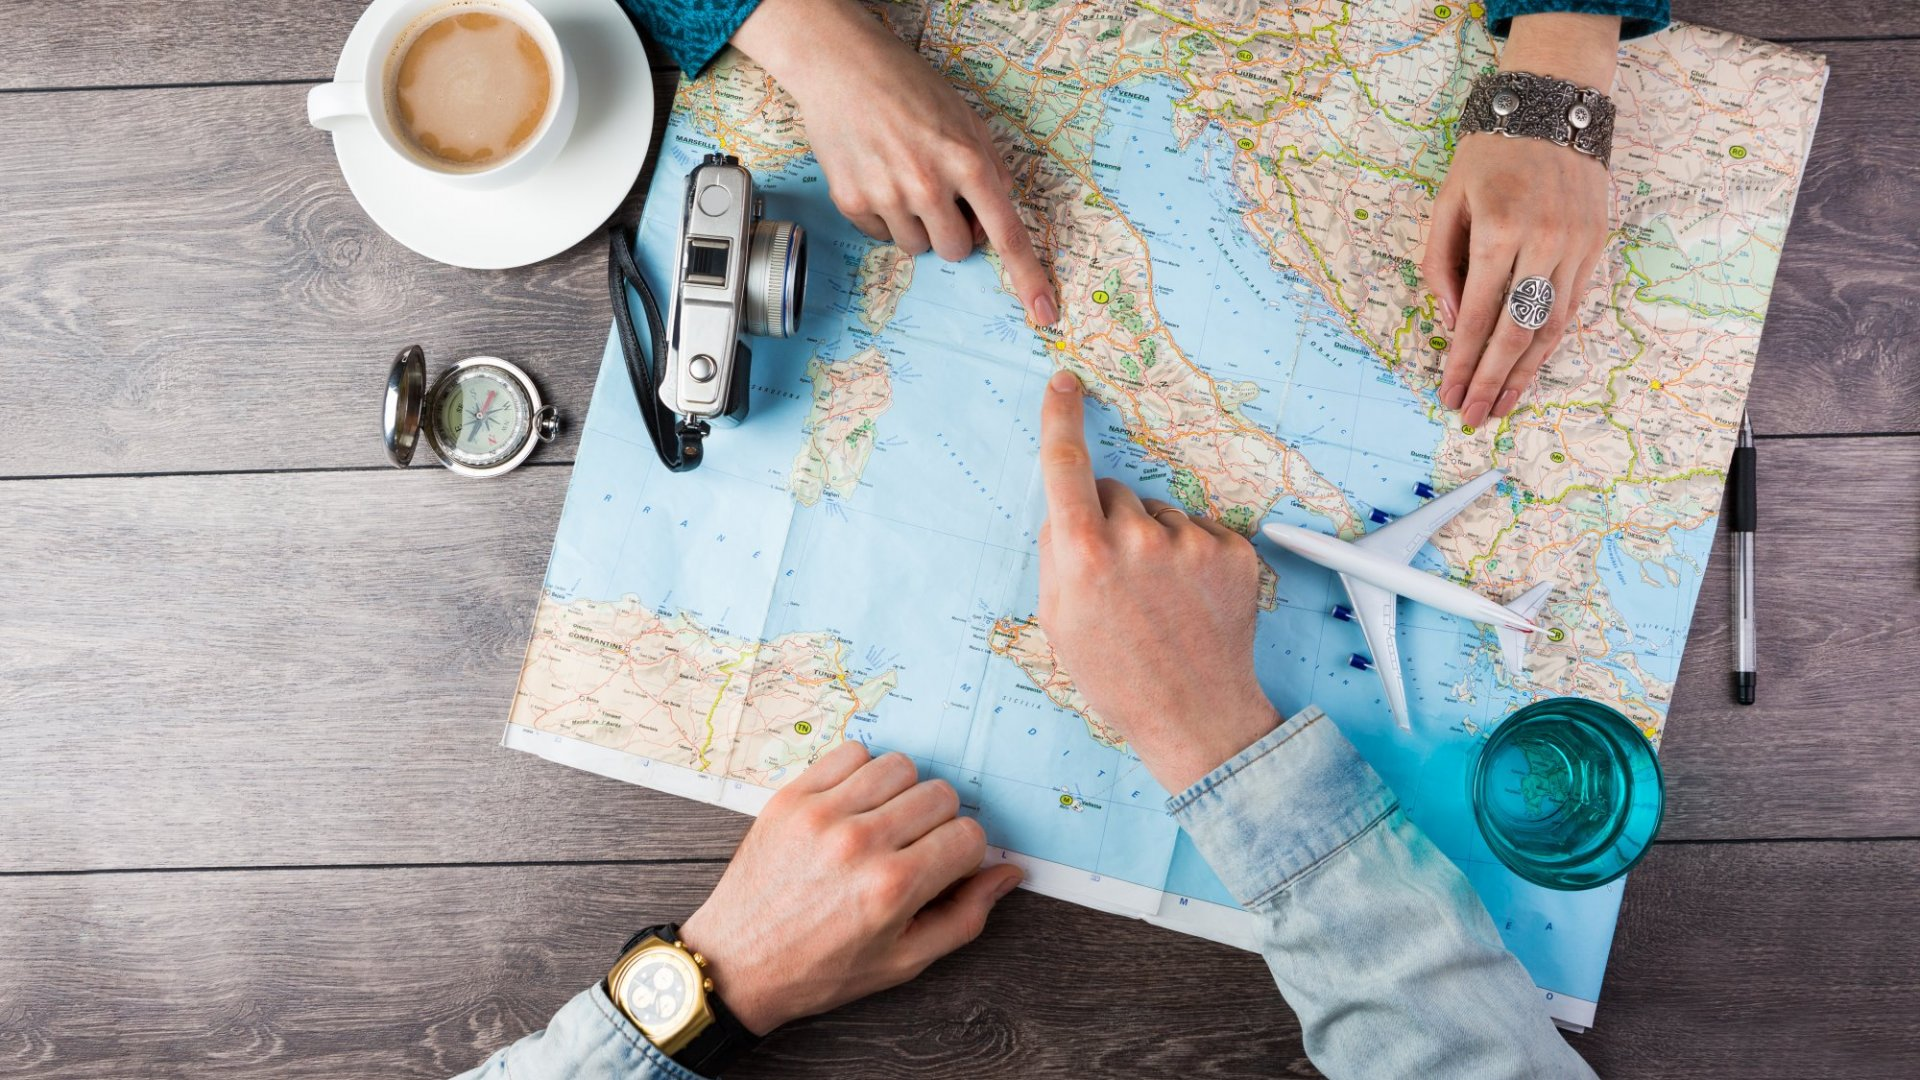 The Latest Trend in Travel Planning: Localization